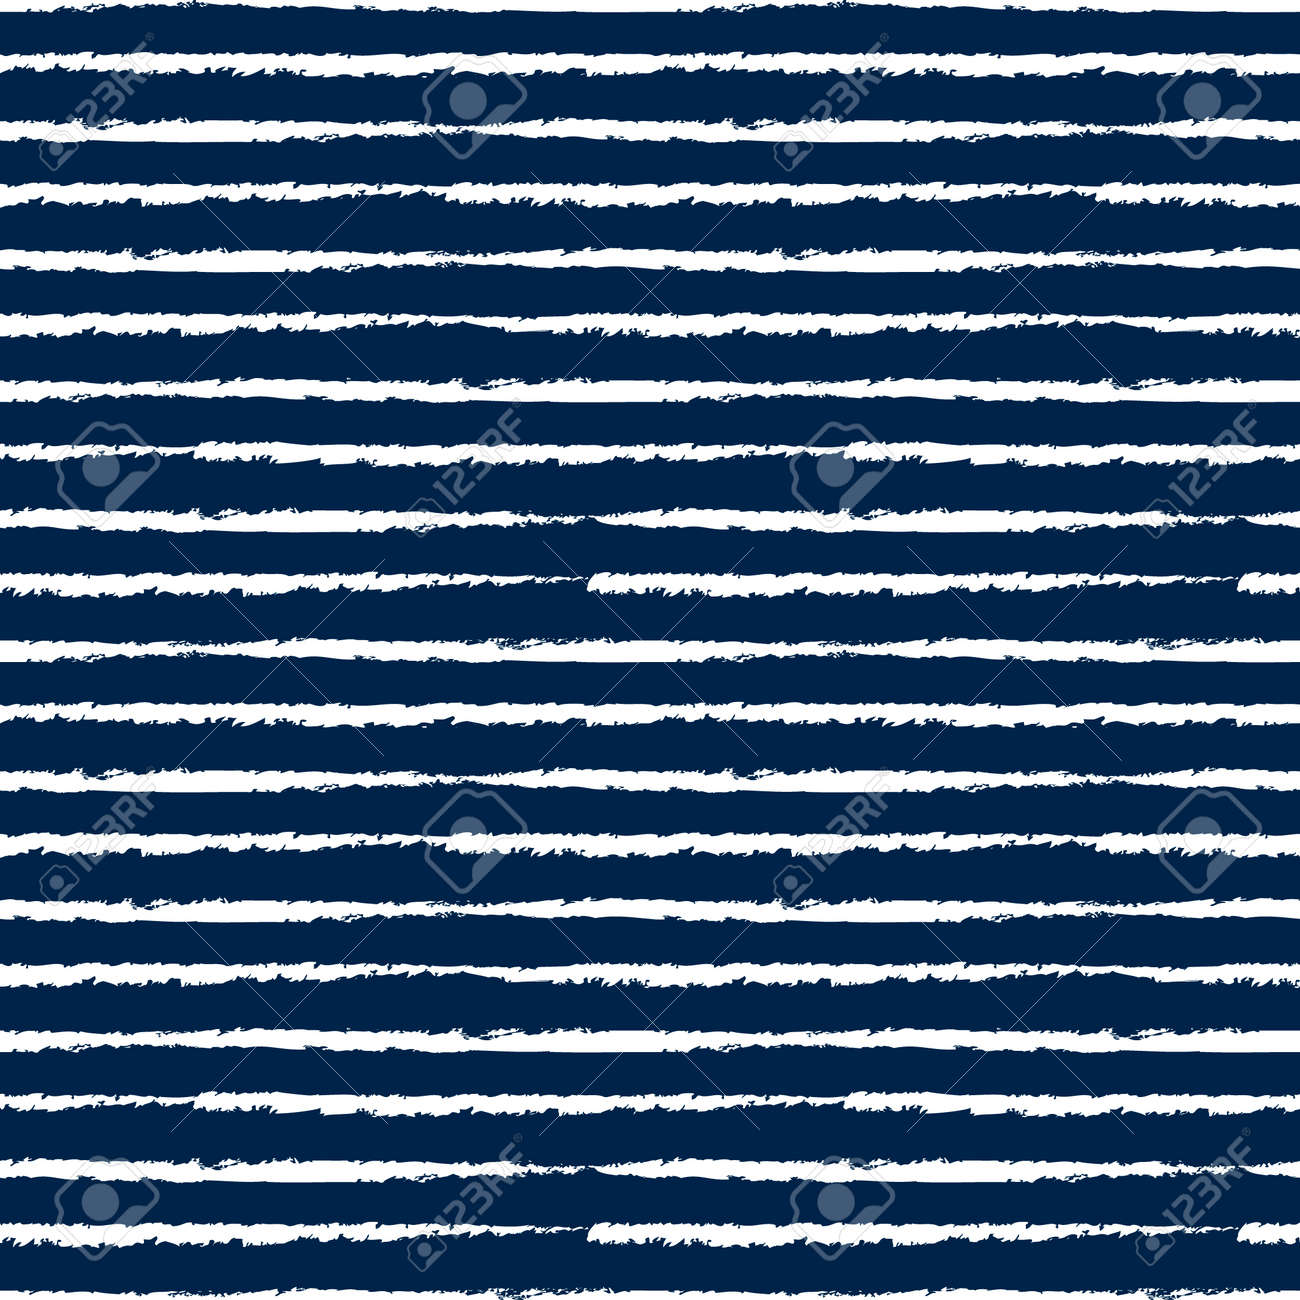 Seamless pattern with grunge stripes. Vector. - 97131968